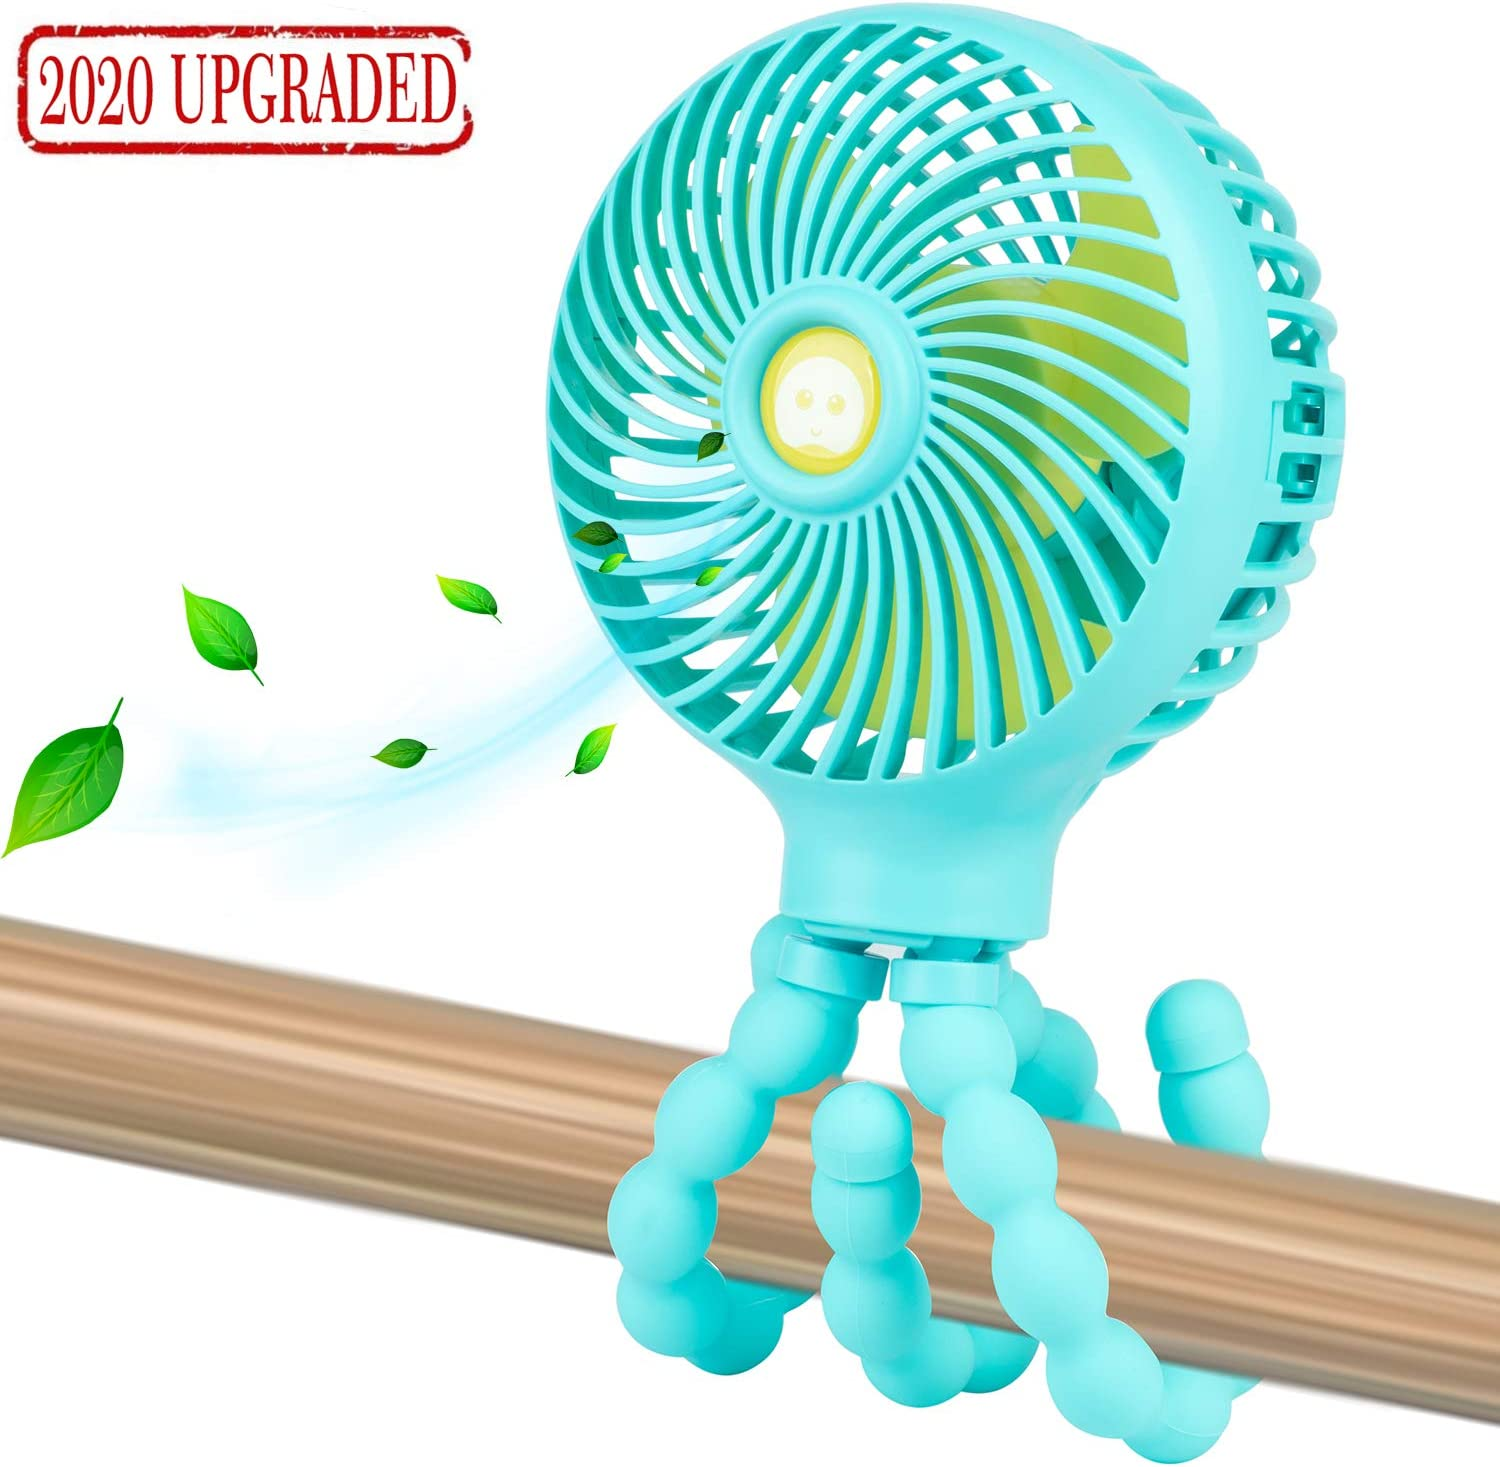 Mini Handheld Personal Portable Fan, Baby Stroller Fan, Car Seat Fan, Desk Fan, with Flexible Tripod Fix on Stroller/Student Bed/Bike/Crib/Car Rides, USB or Battery Powered (Light Blue)